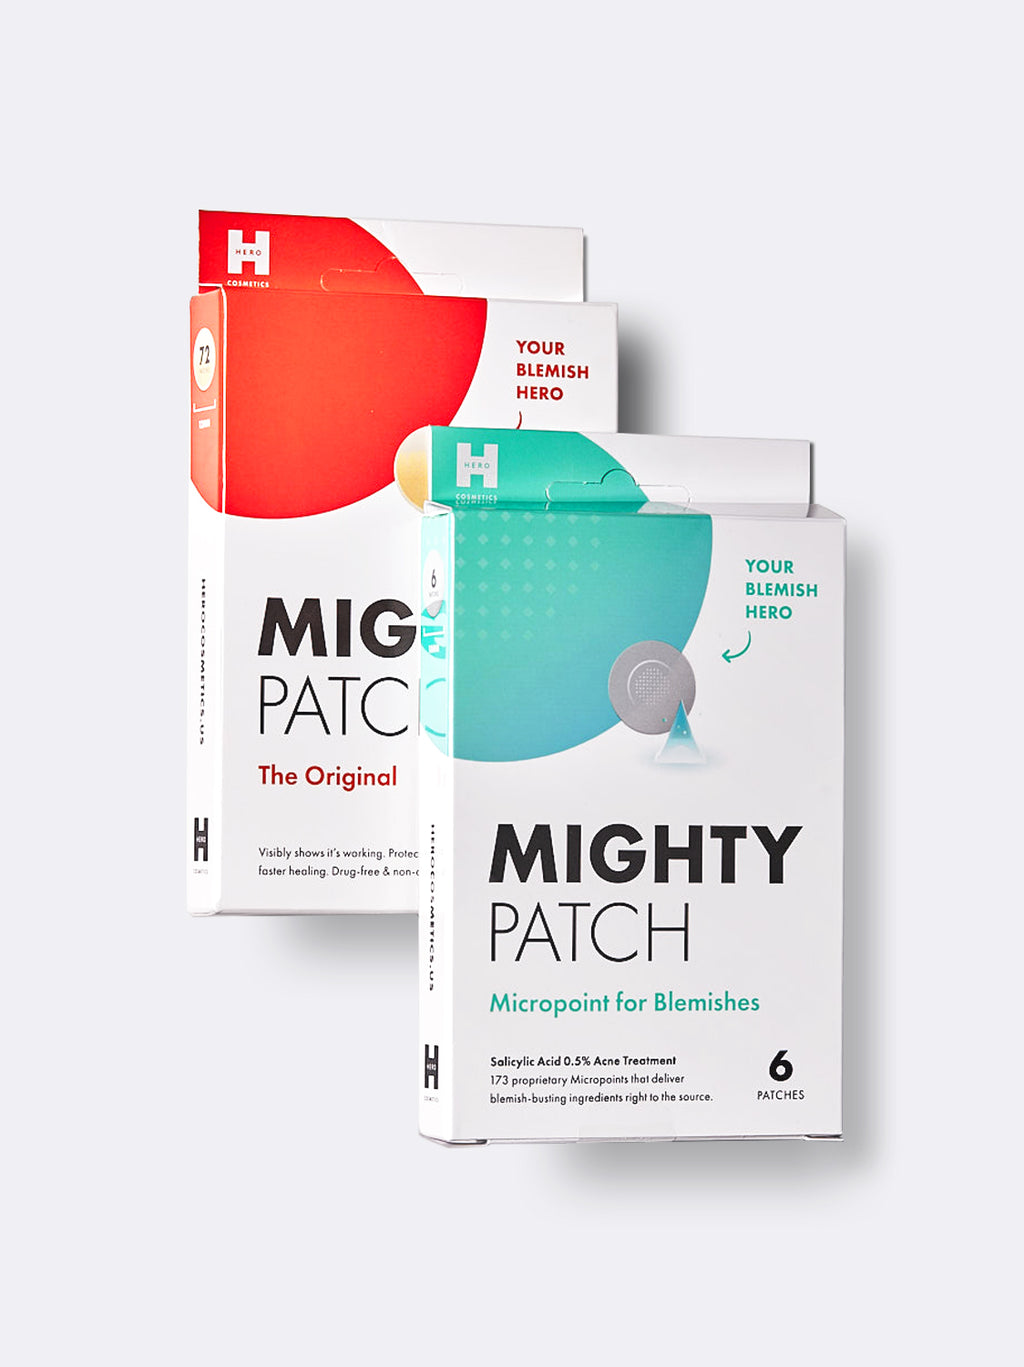 Micropoint for Blemishes and Original Bundle